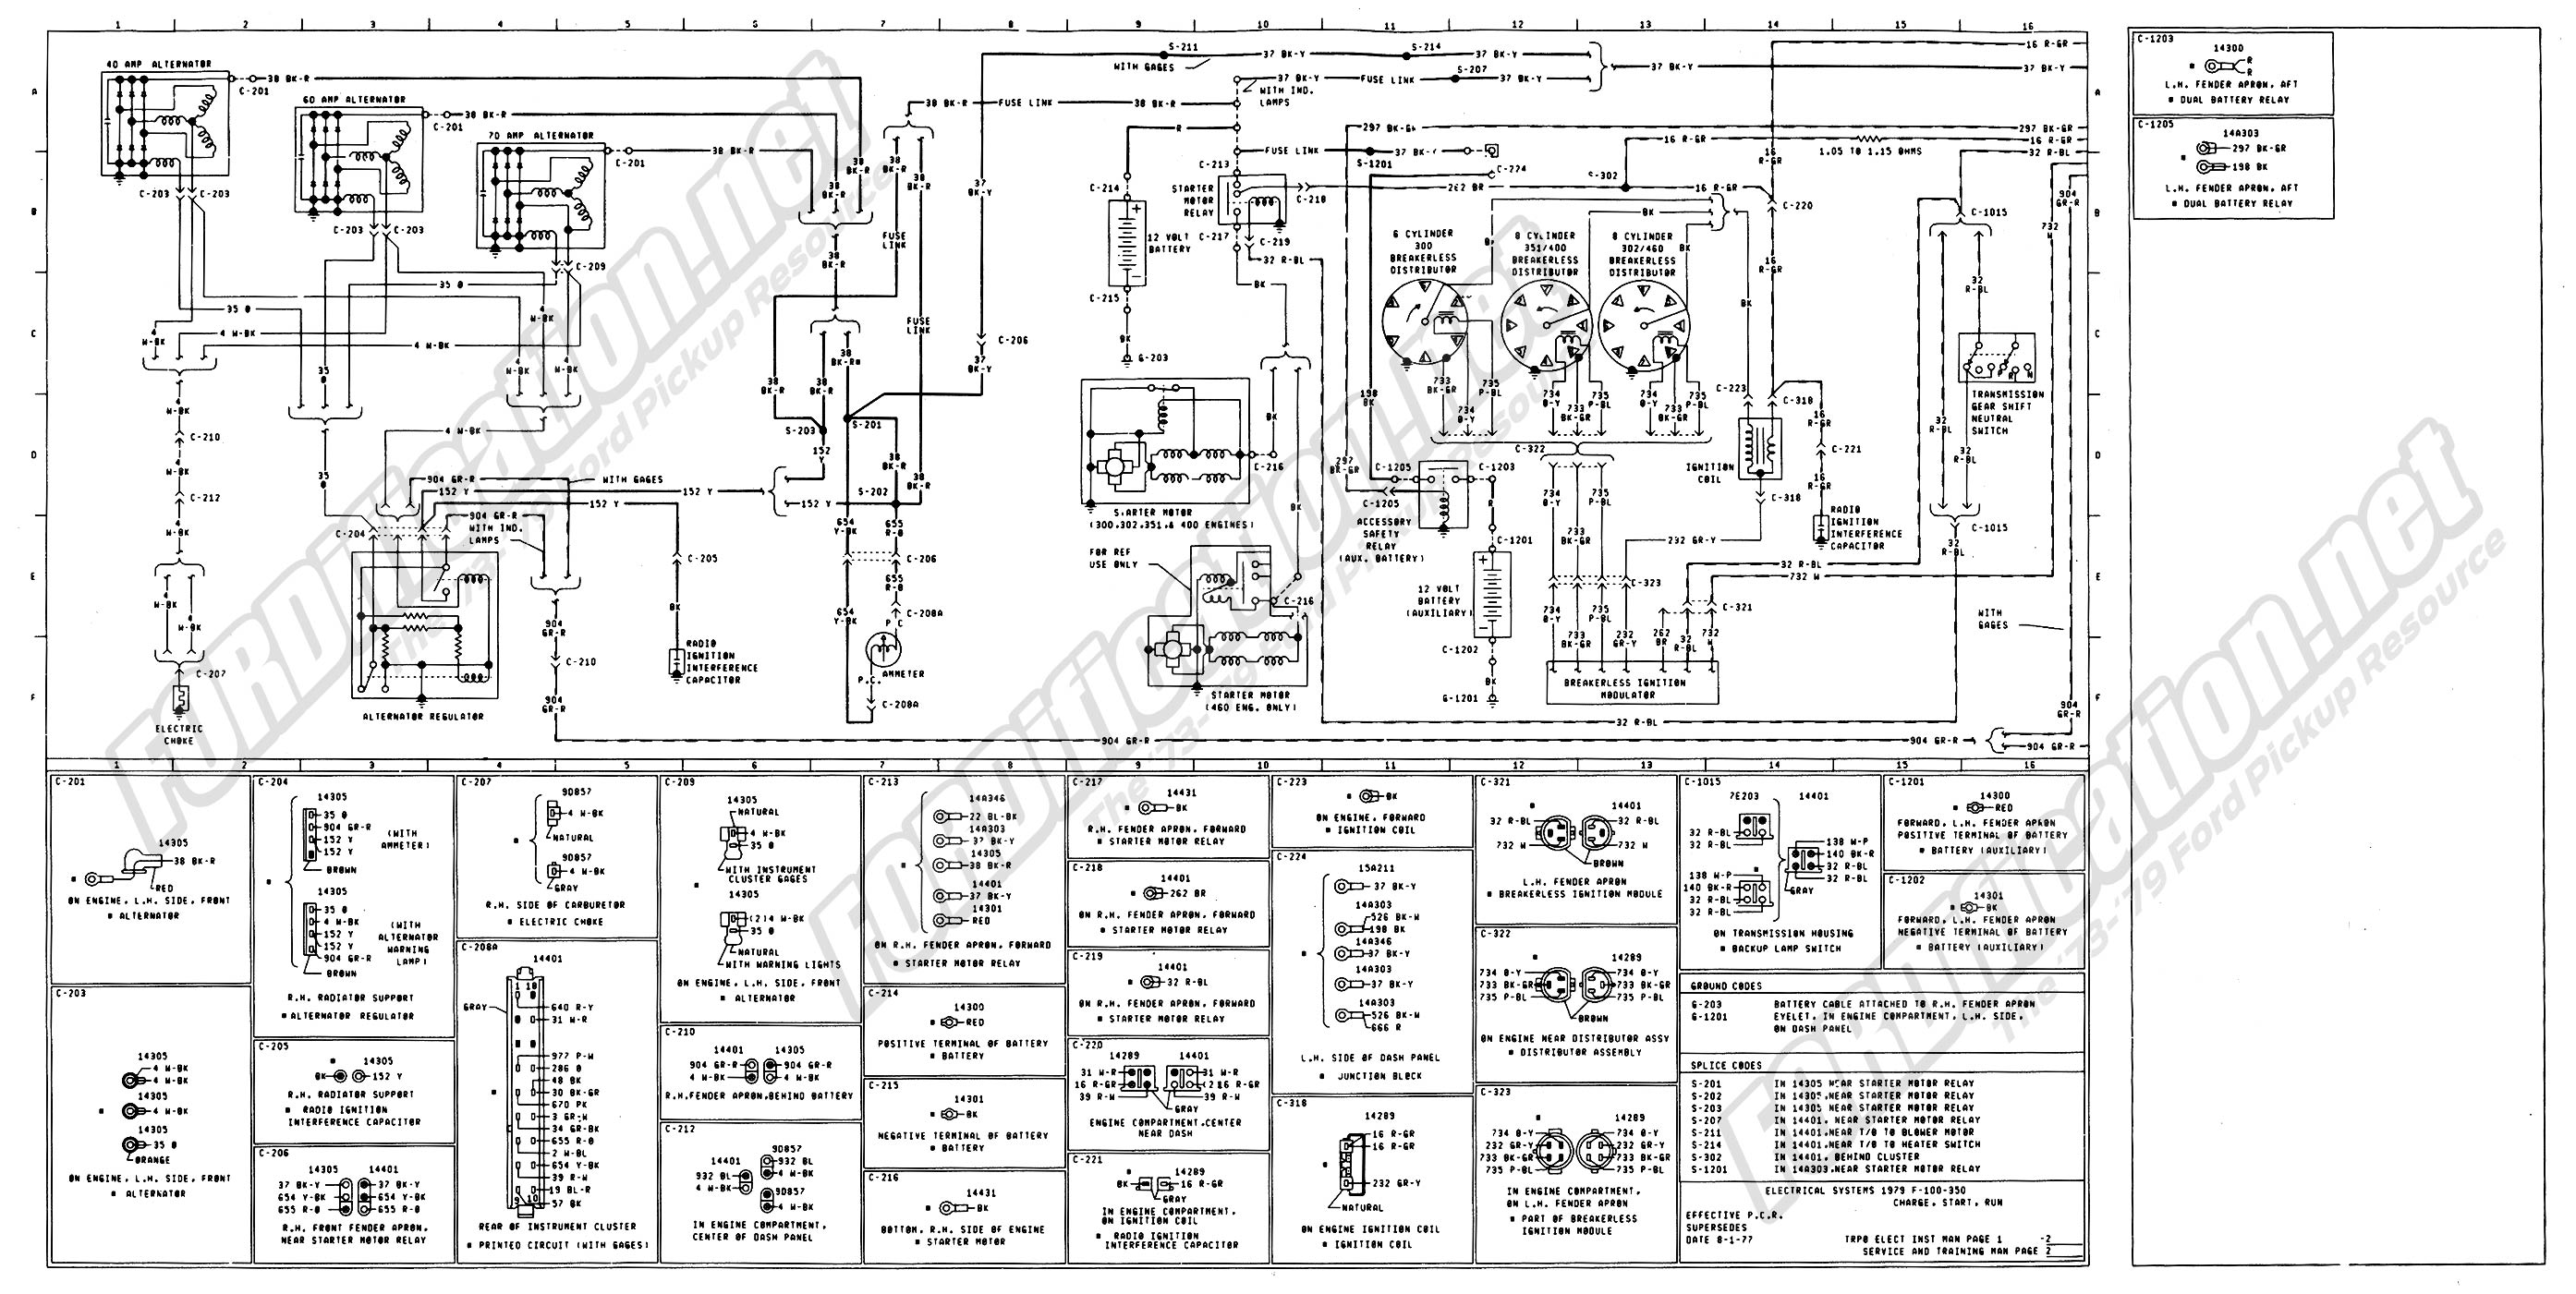 wiring_79master_2of9 1973 1979 ford truck wiring diagrams & schematics fordification net 1999 F150 Radio Wiring Diagram at bakdesigns.co